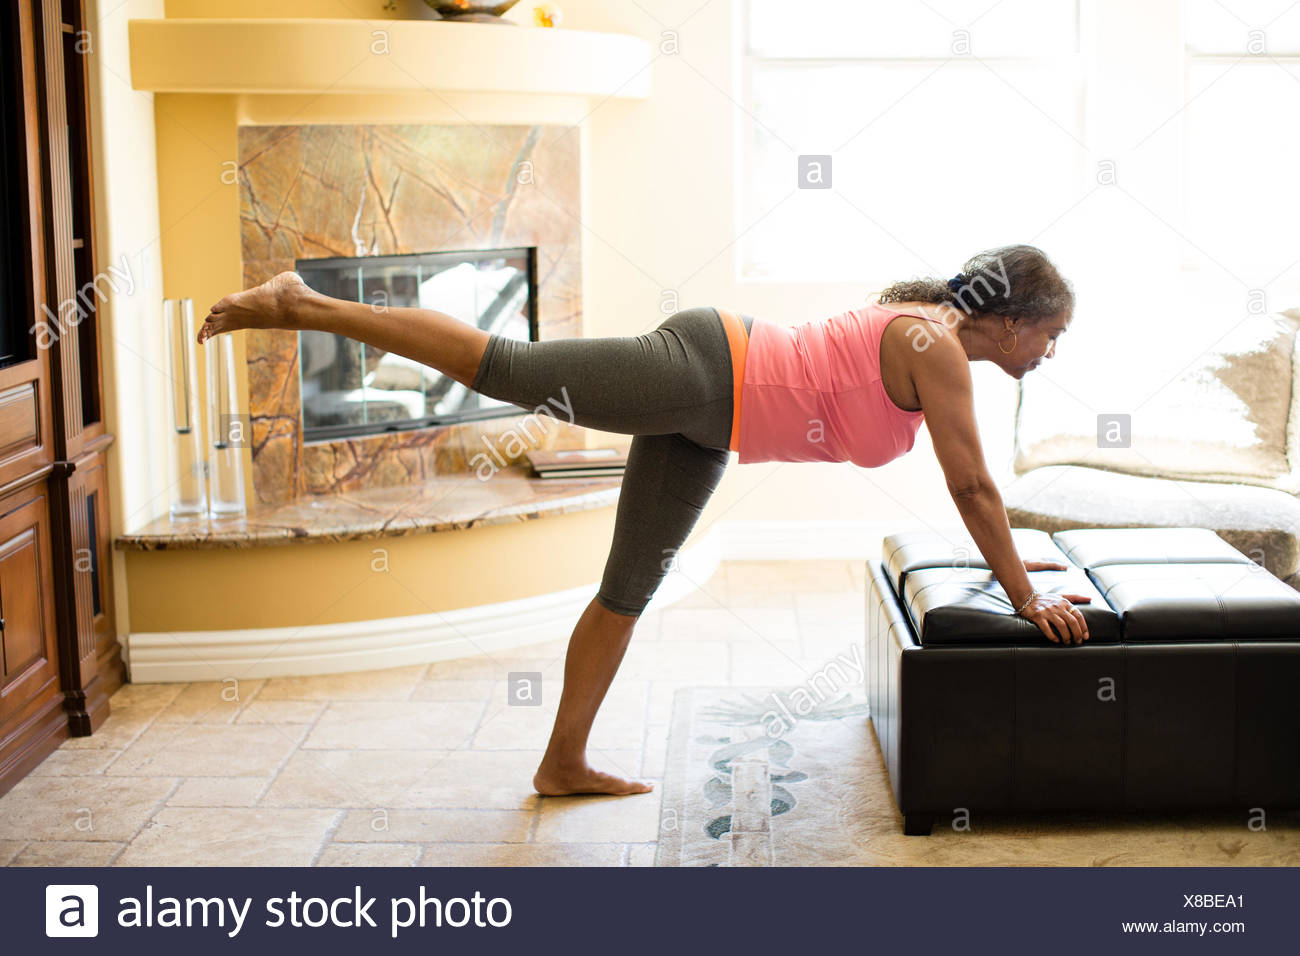 Side view of woman leaning against pouffe doing stretching exercise - Stock Image